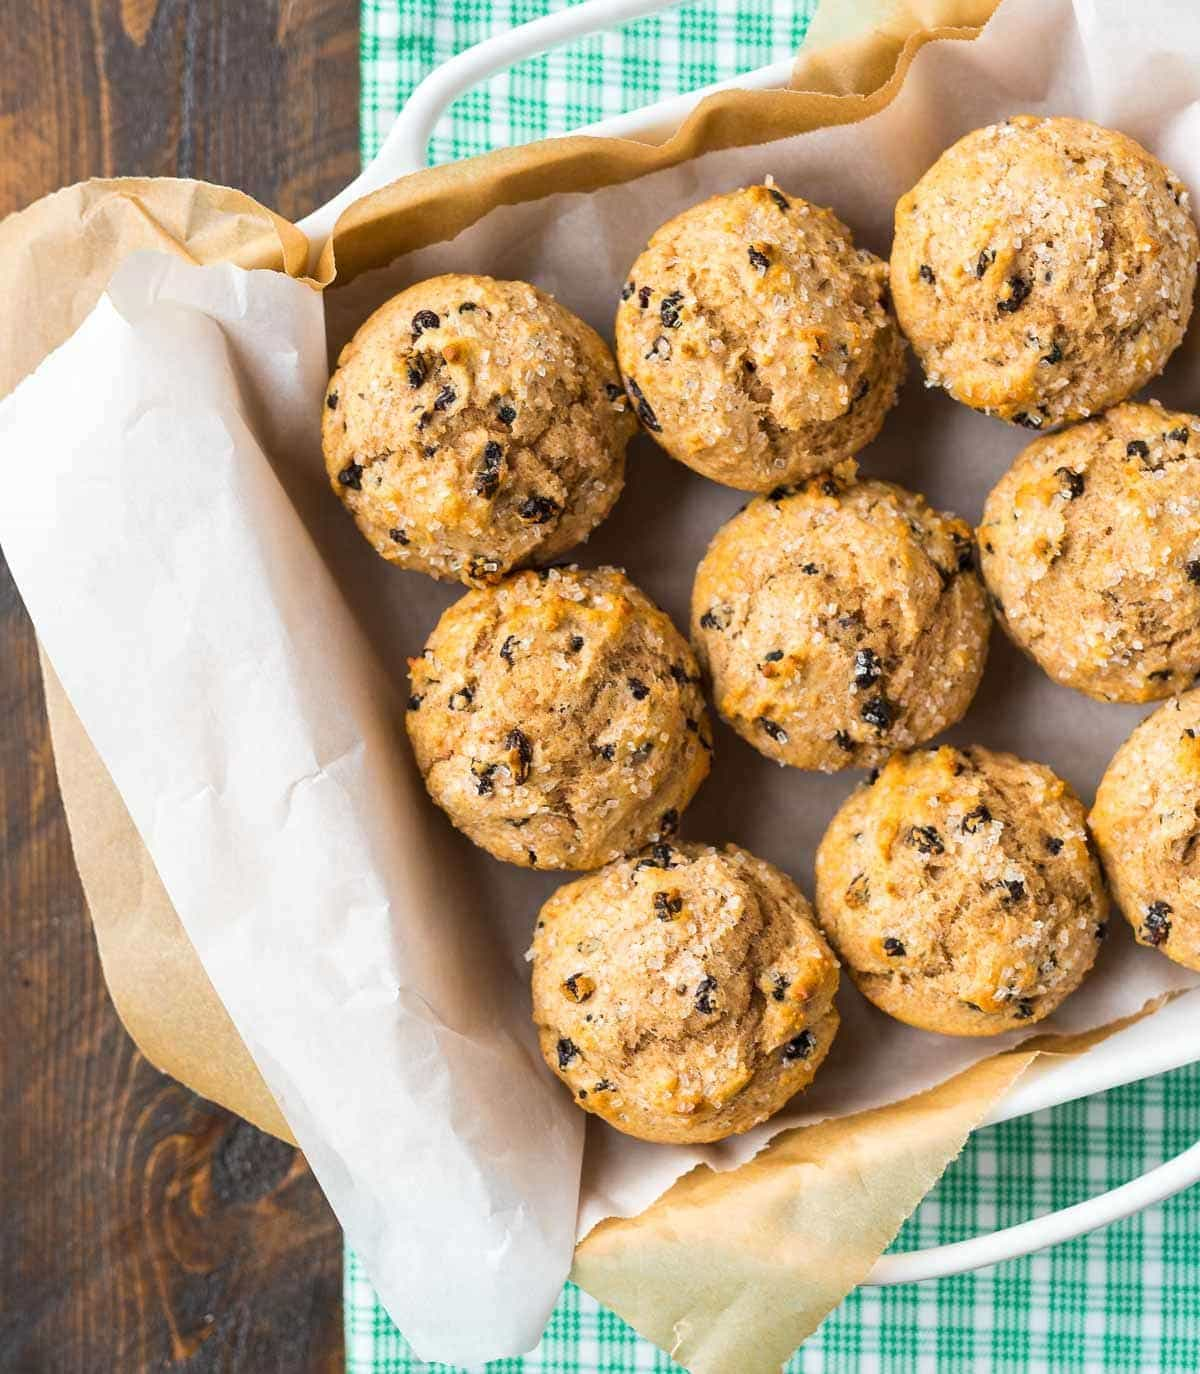 Irish Soda Bread Muffins – authentic Irish soda bread, in individual muffin form! Perfect for St. Patrick's Day breakfast or anytime you need an easy, healthy muffin recipe. Made with whole wheat flour, currants, and a touch of butter. Recipe at wellplated.com | @wellplated